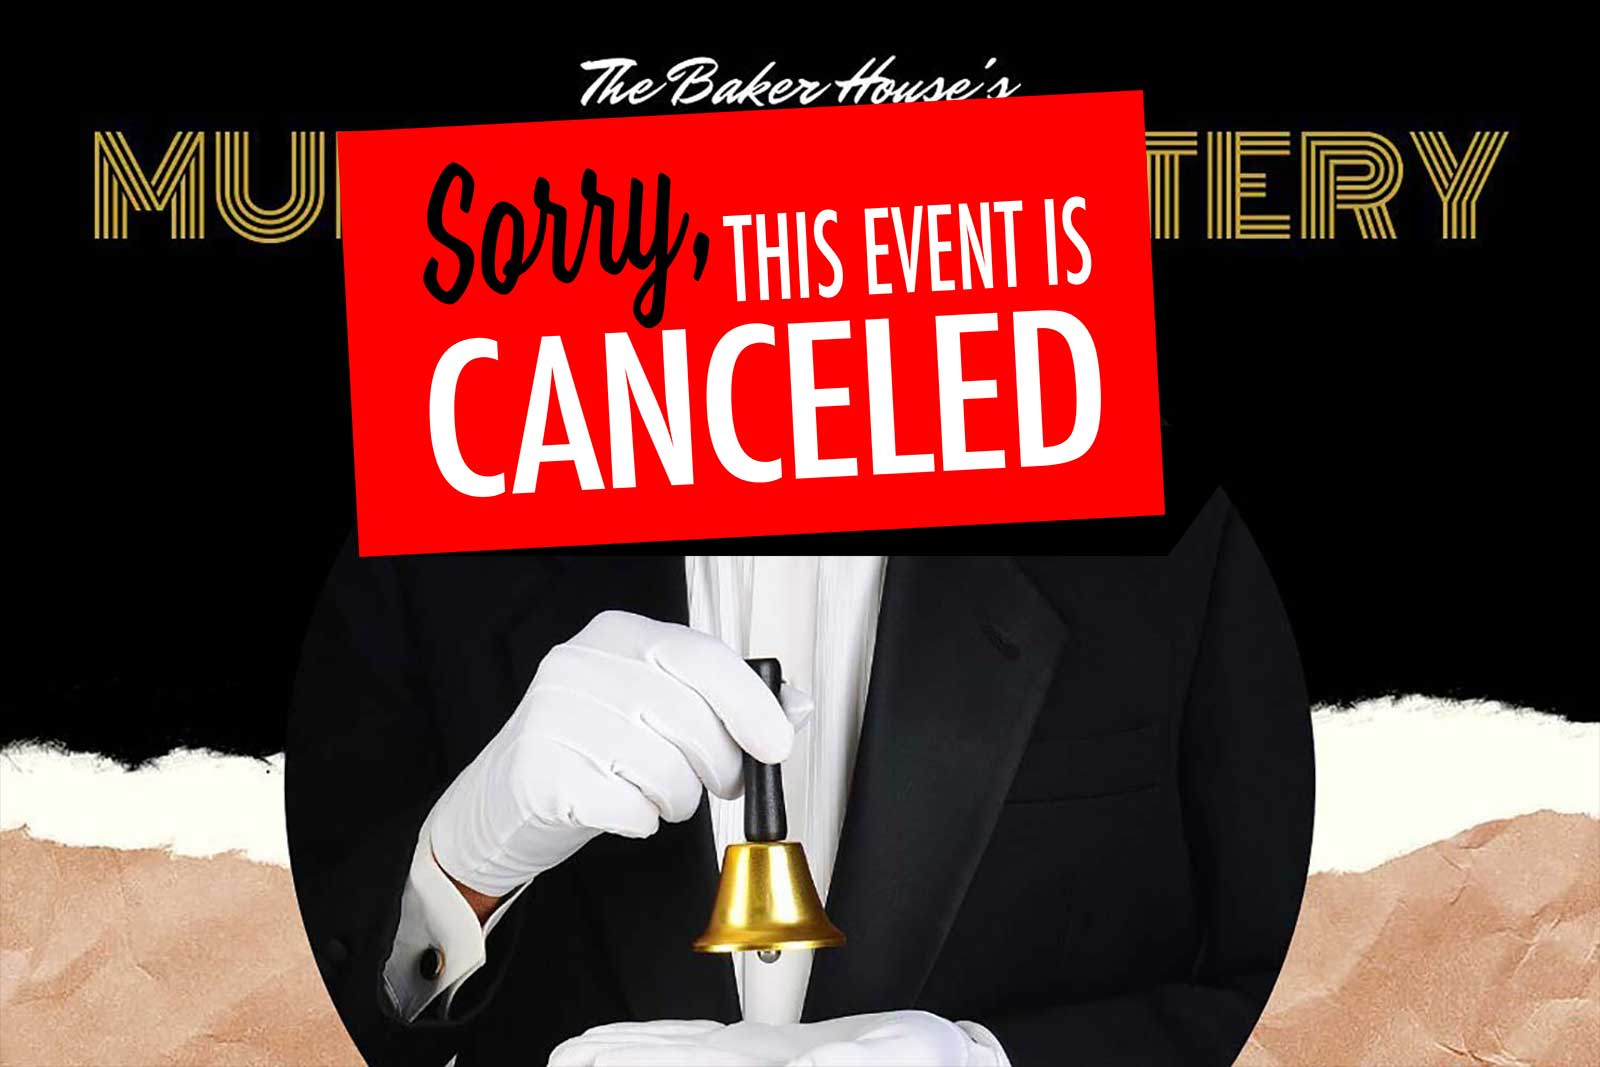 Murder-Mystery-Baker-House-Events-canceled